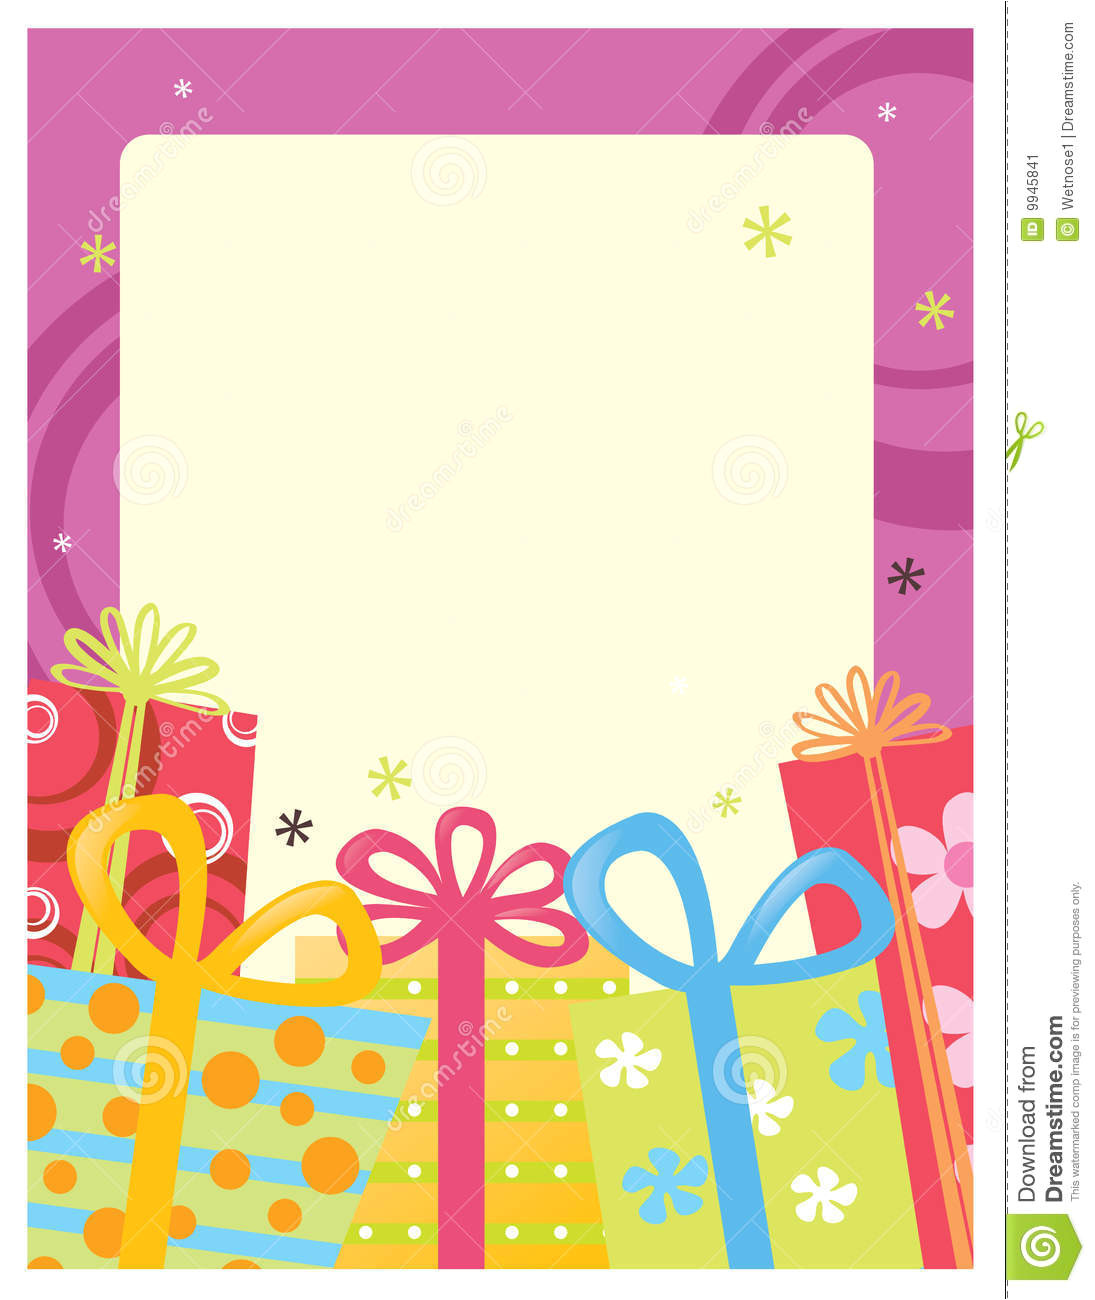 stock image 8 5x11 flyer poster template image9945841